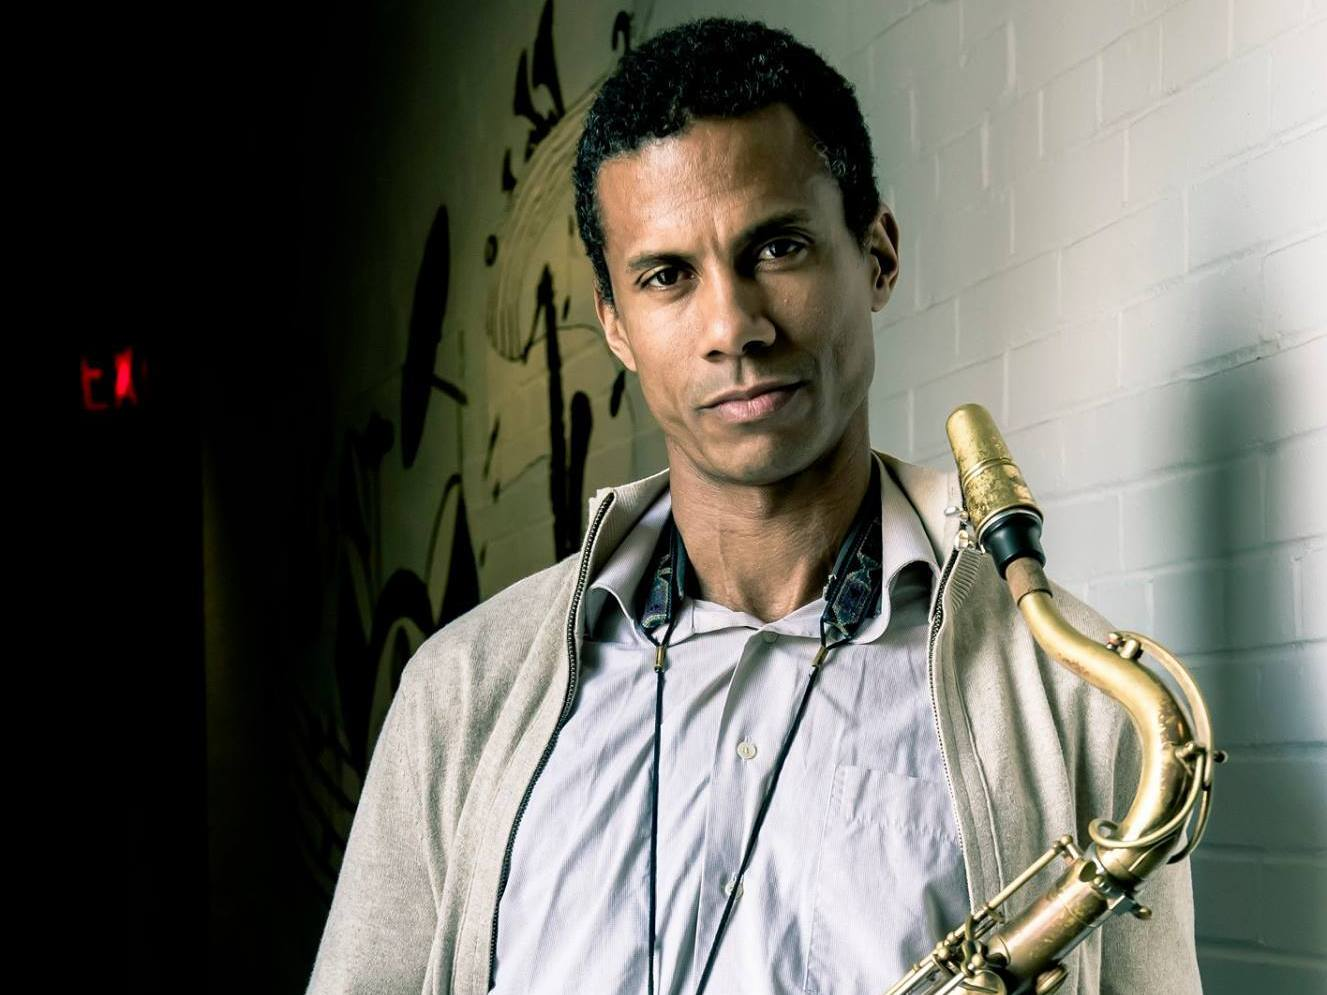 In Tenor Saxophonist Mark Turner's New Album, The Music Unfolds Like A Narrative